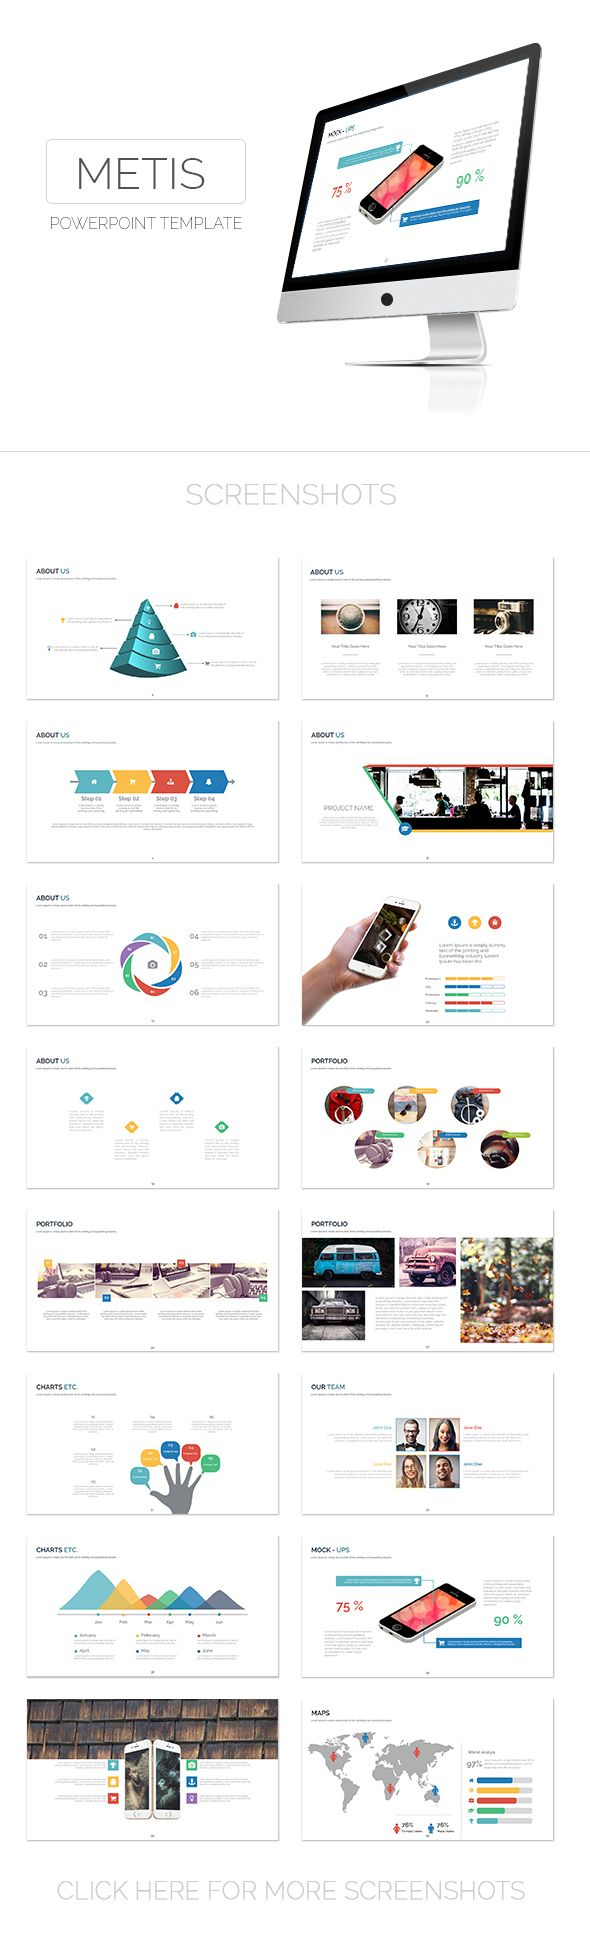 metis powerpoint template - creative powerpoint templates, Powerpoint templates